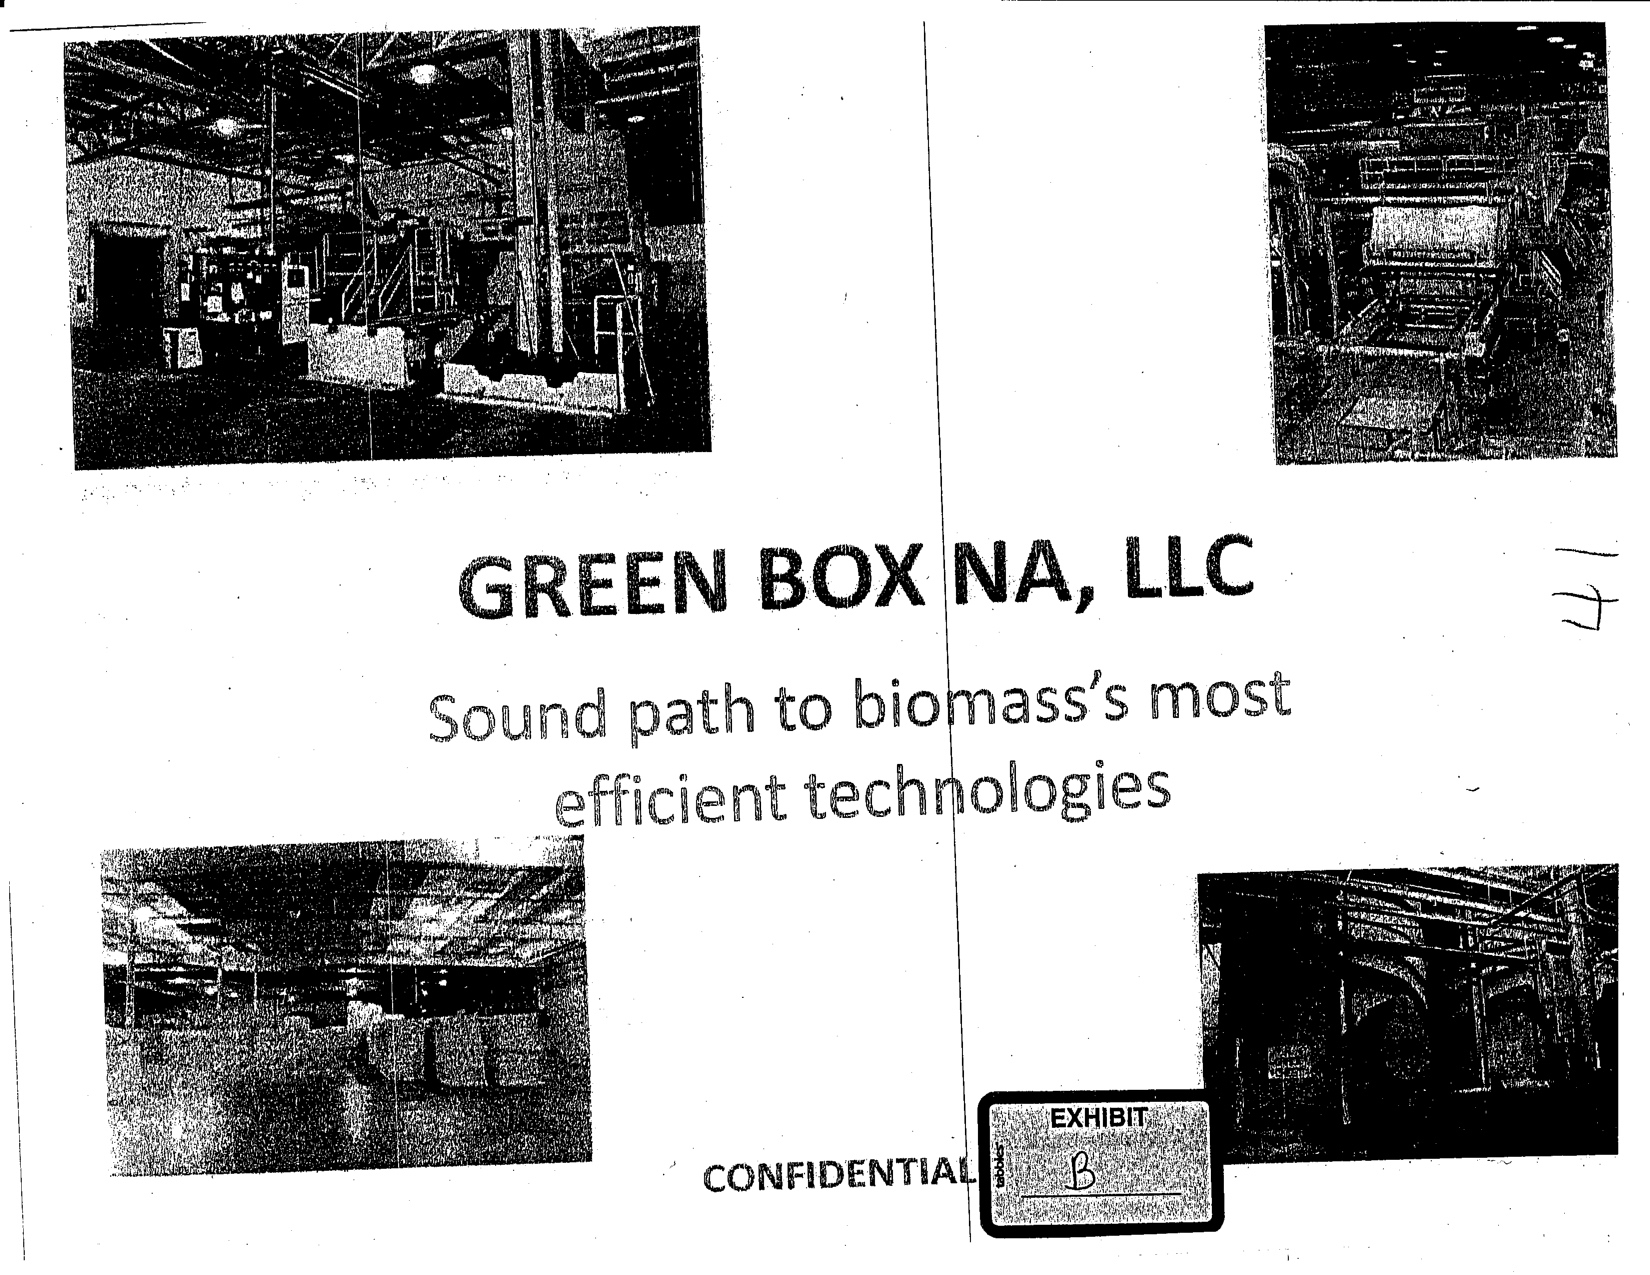 1 GREEN BOX NA PYROLYSIS brochure